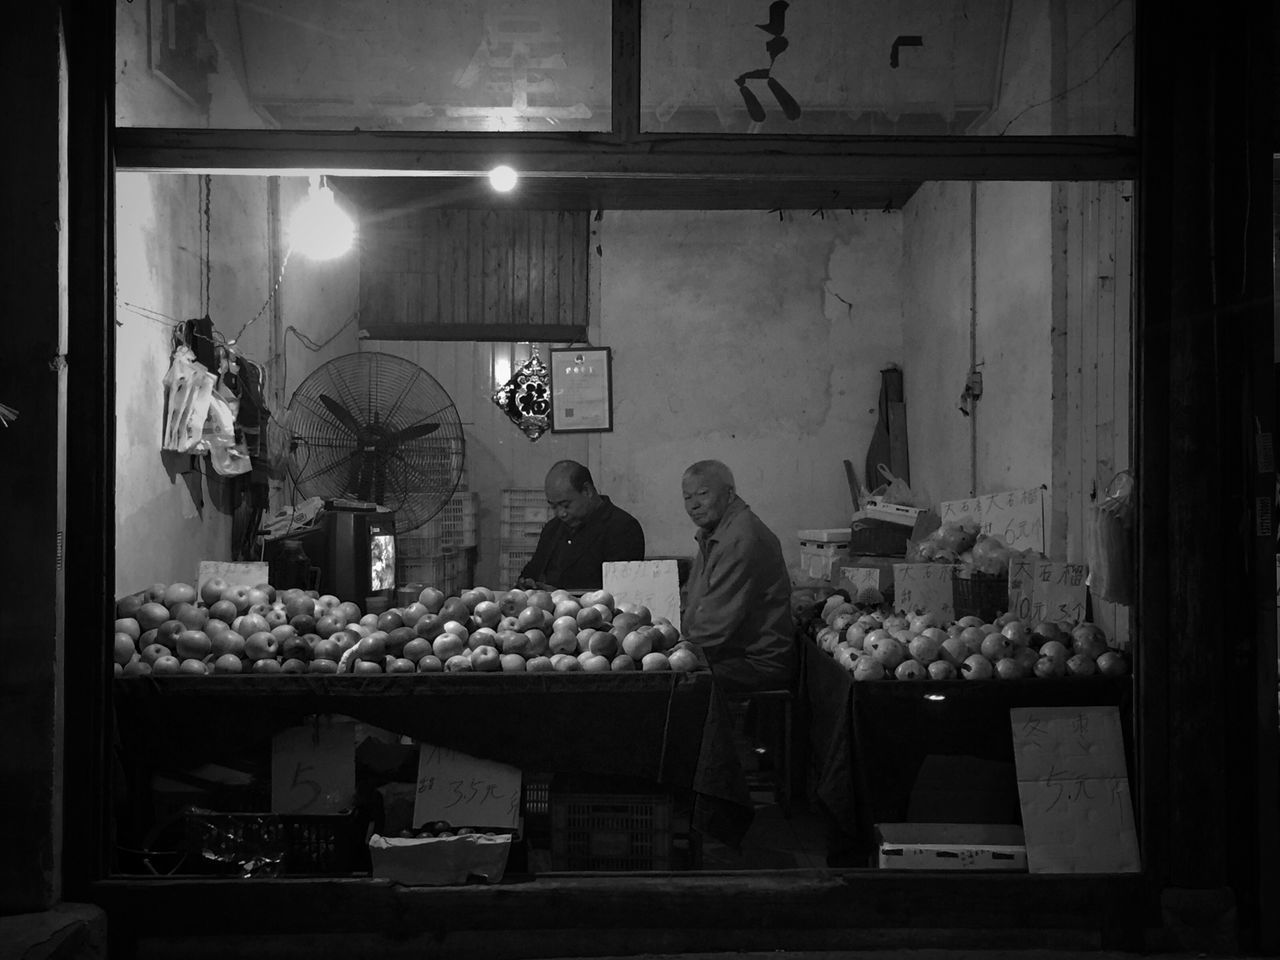 Real People Small Business For Sale Night Night View Night Lights Blackandwhite Street Photo Streetphotography EyeEm Taiwan Eye4photography  EyeEm Gallery Streetphoto_bw My Black & White Photography Bnw_life Still Life Daily Life Old Bnw The City Light